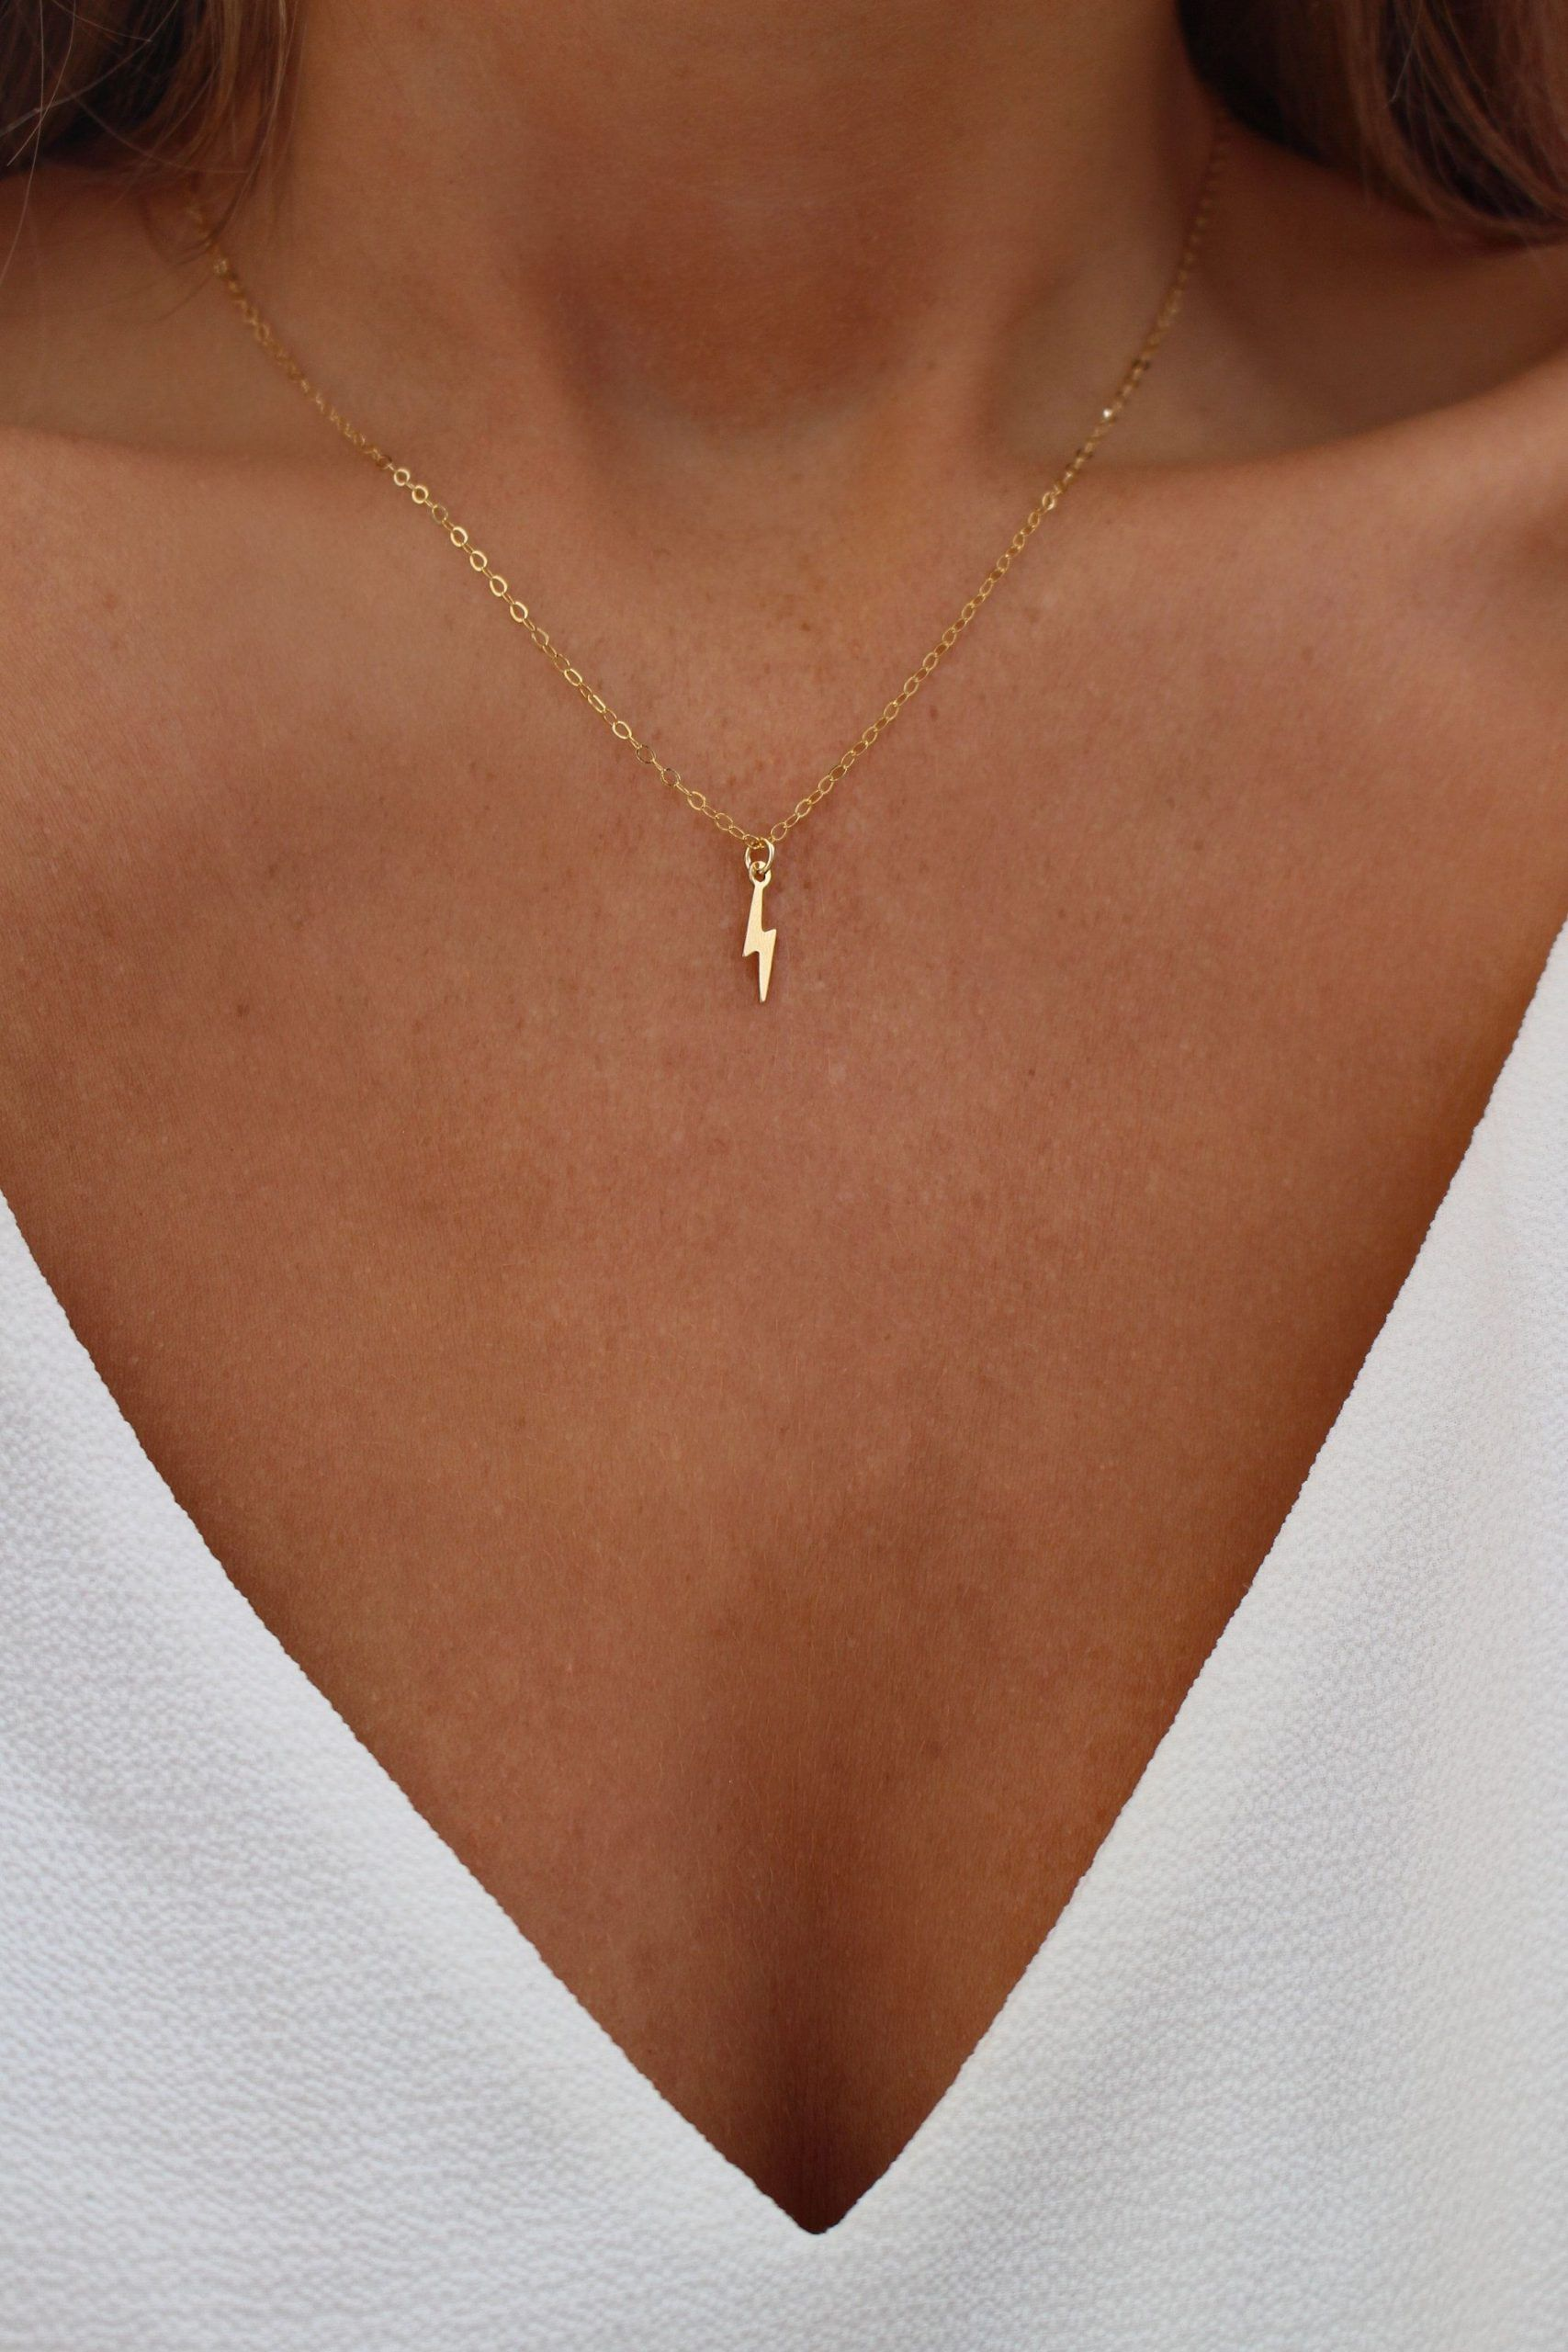 Photo of Gold lightning necklace | Dainty gold chain Lightning necklace | Wizard necklace | Bolt necklace | Gift for her | Flash necklace – geldeizleme.com/de